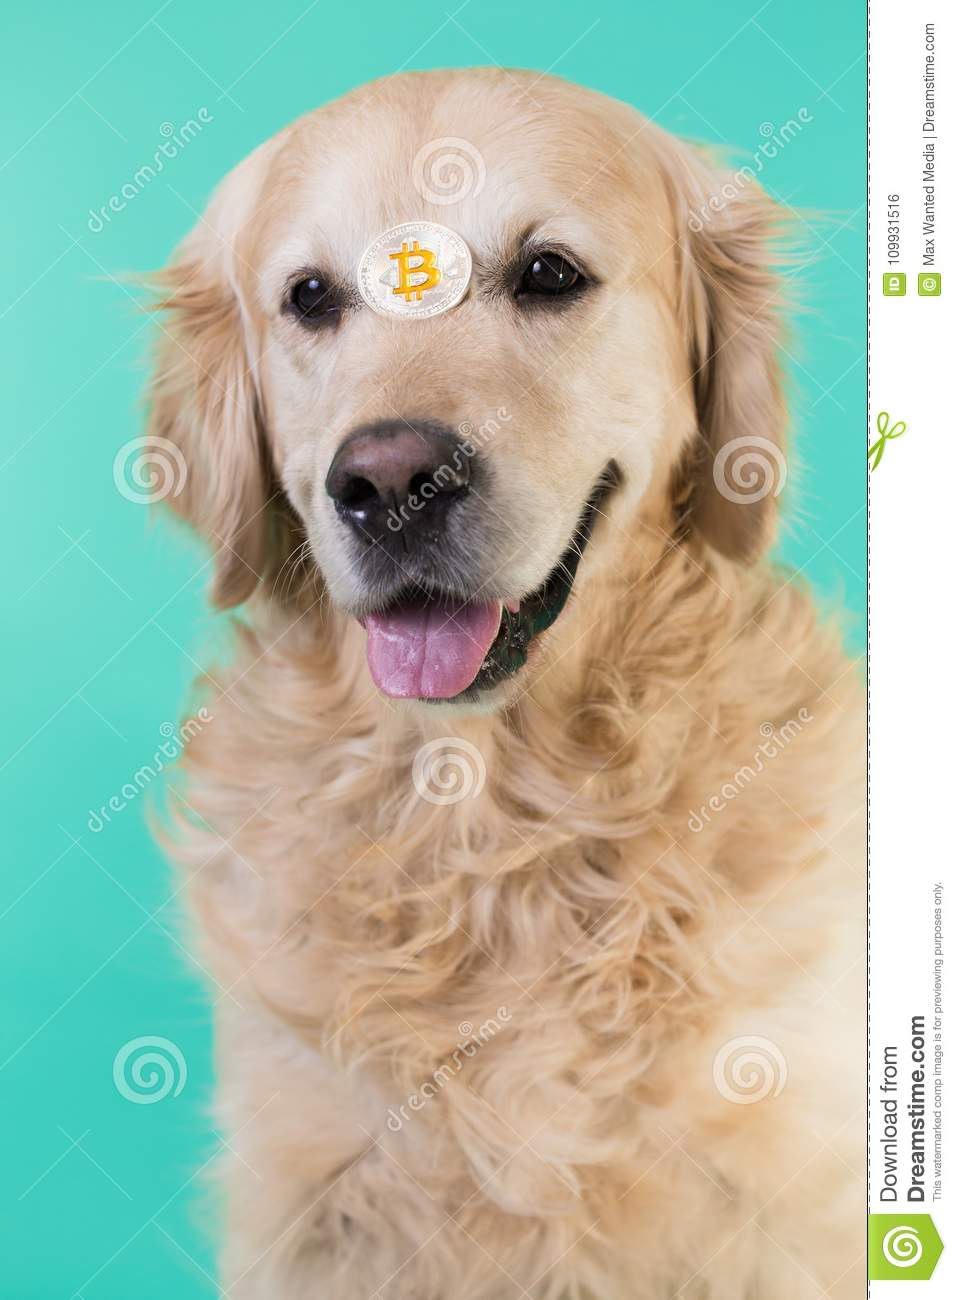 Change dog coins to bitcoins for sale the crow which on of you motorhead want to bet this one is